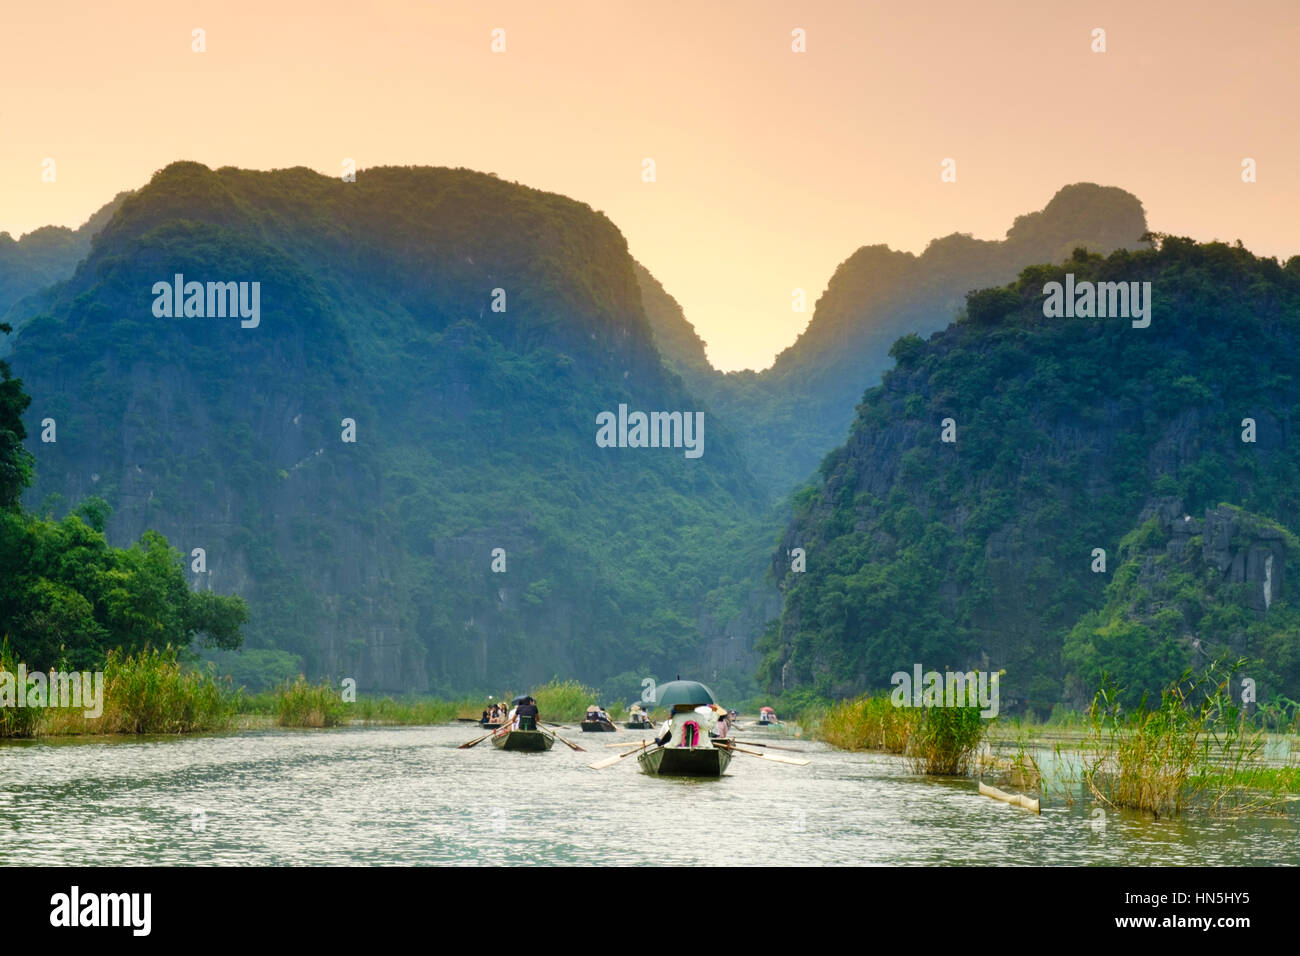 Tourist boats on the river in karst country in Tam Coc, Ninh Binh, North Vietnam Stock Photo